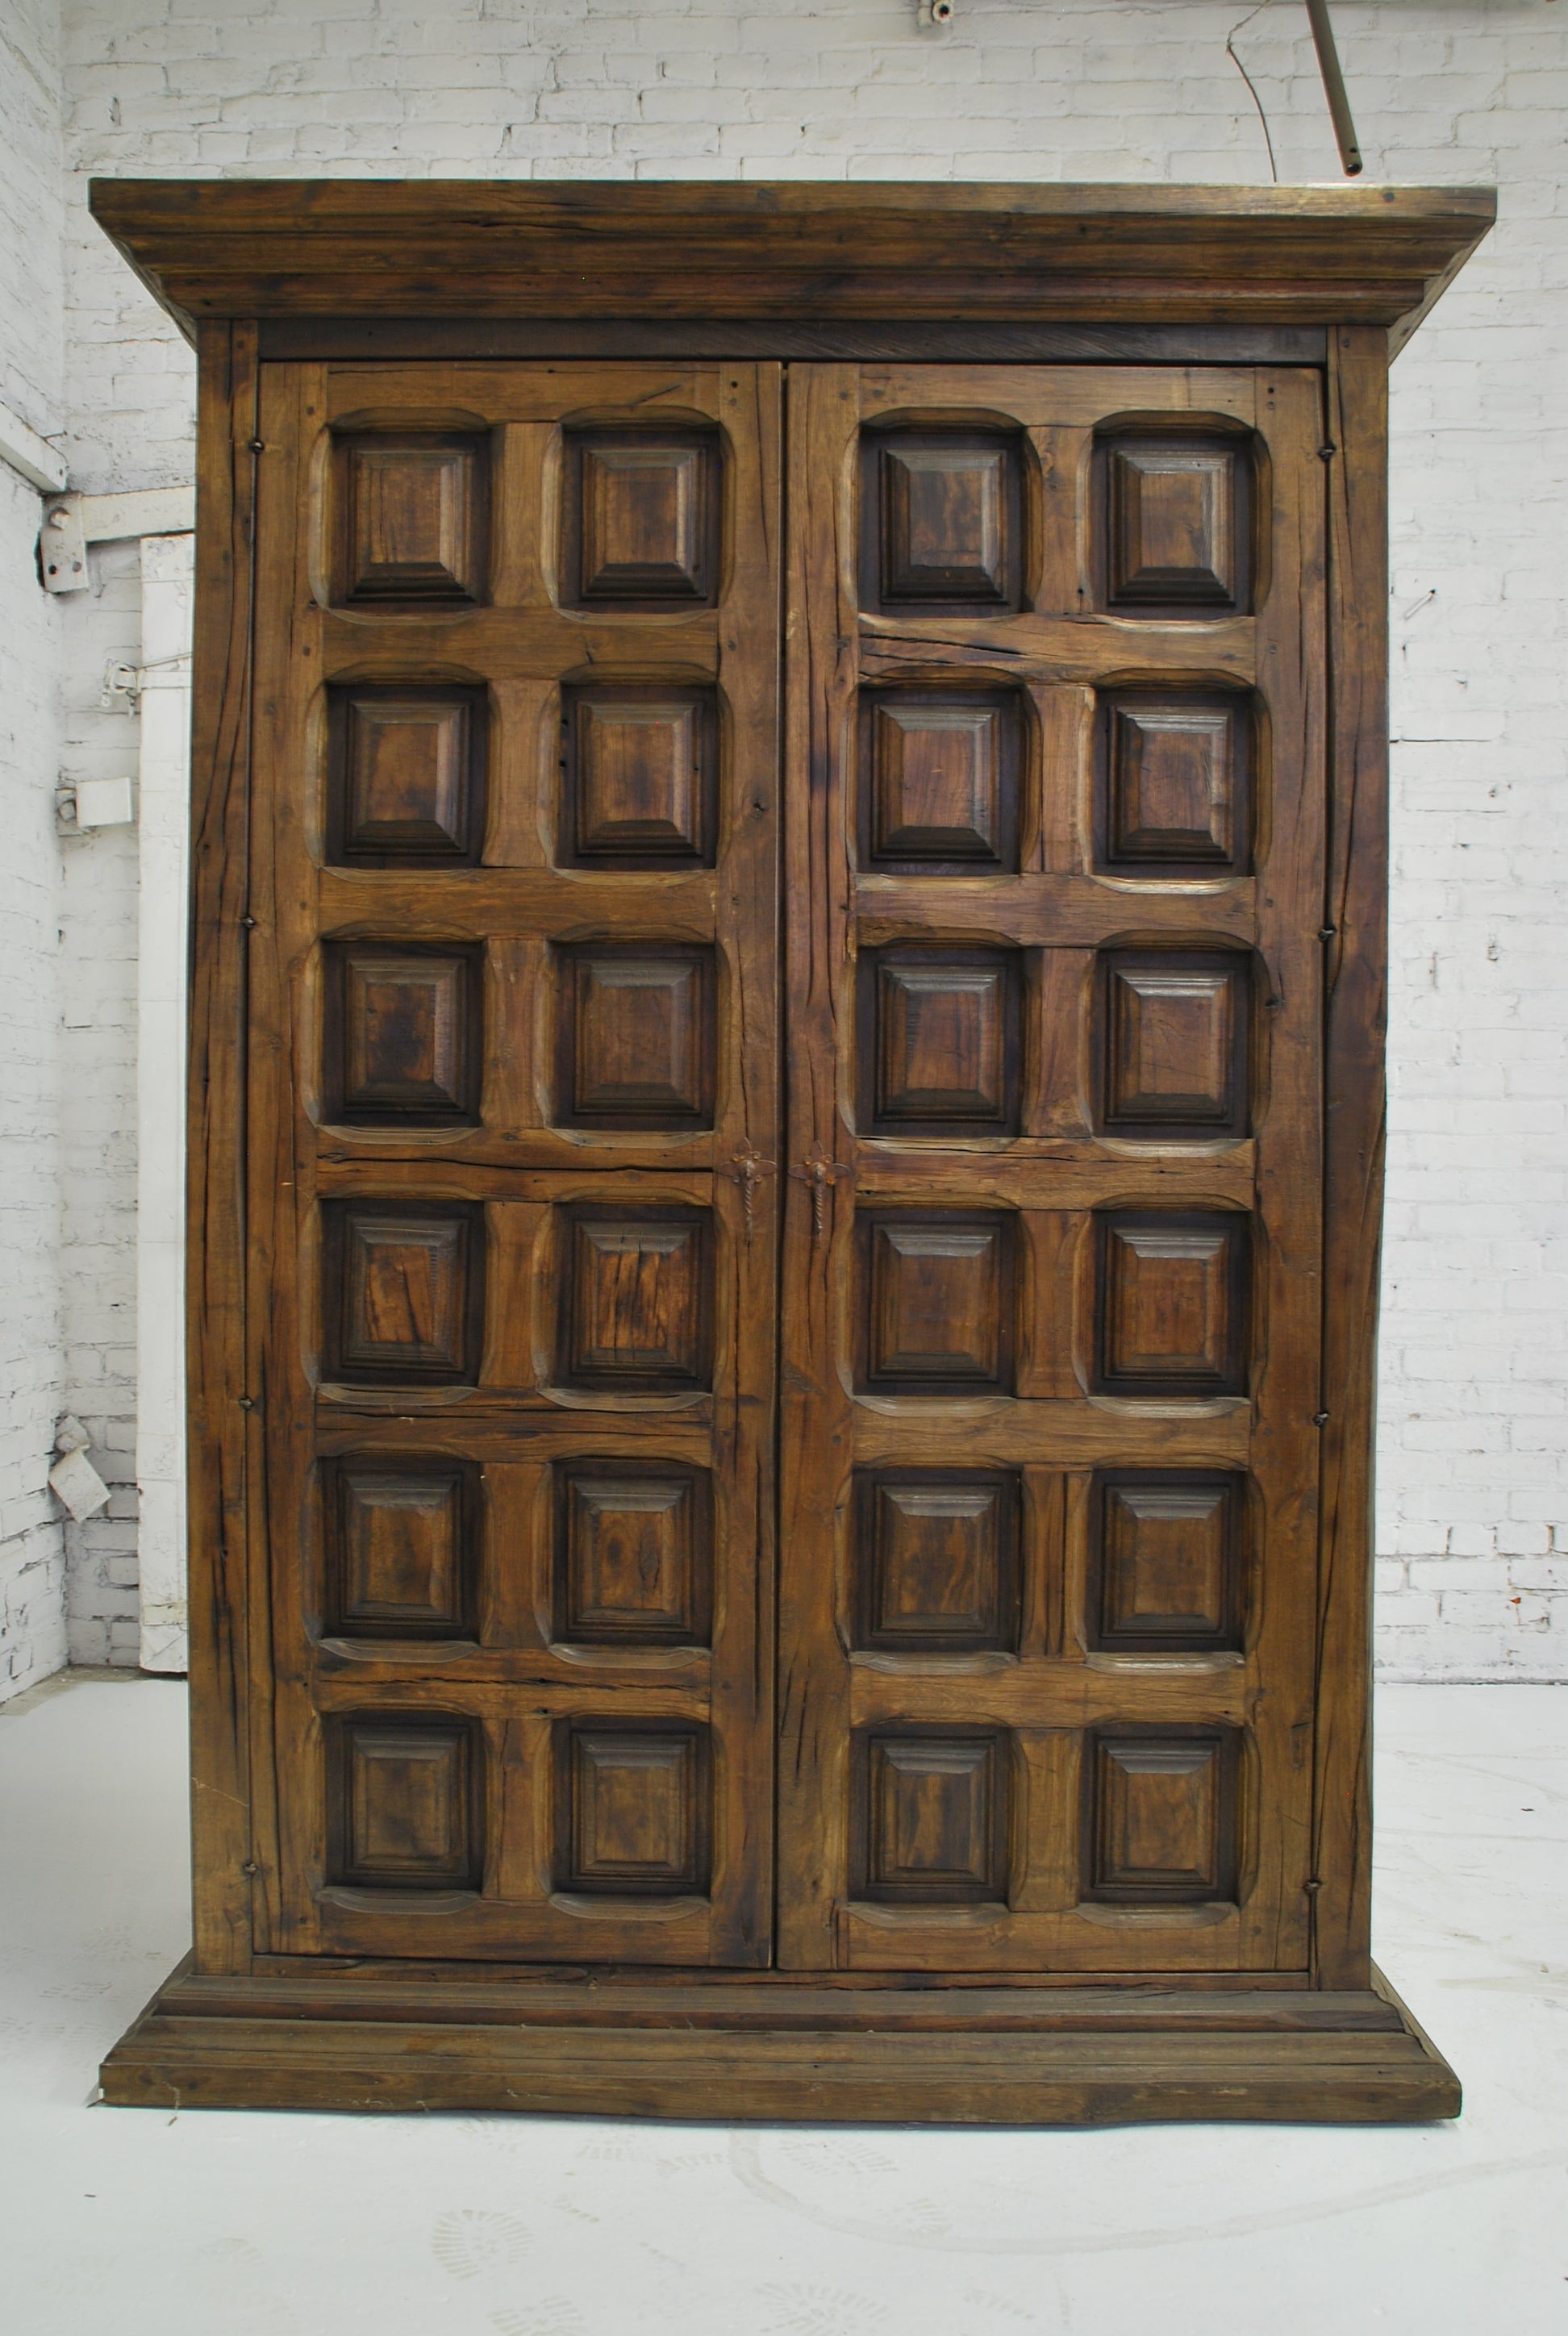 Barn Wood Armoire - Square Panel Carving AR-001